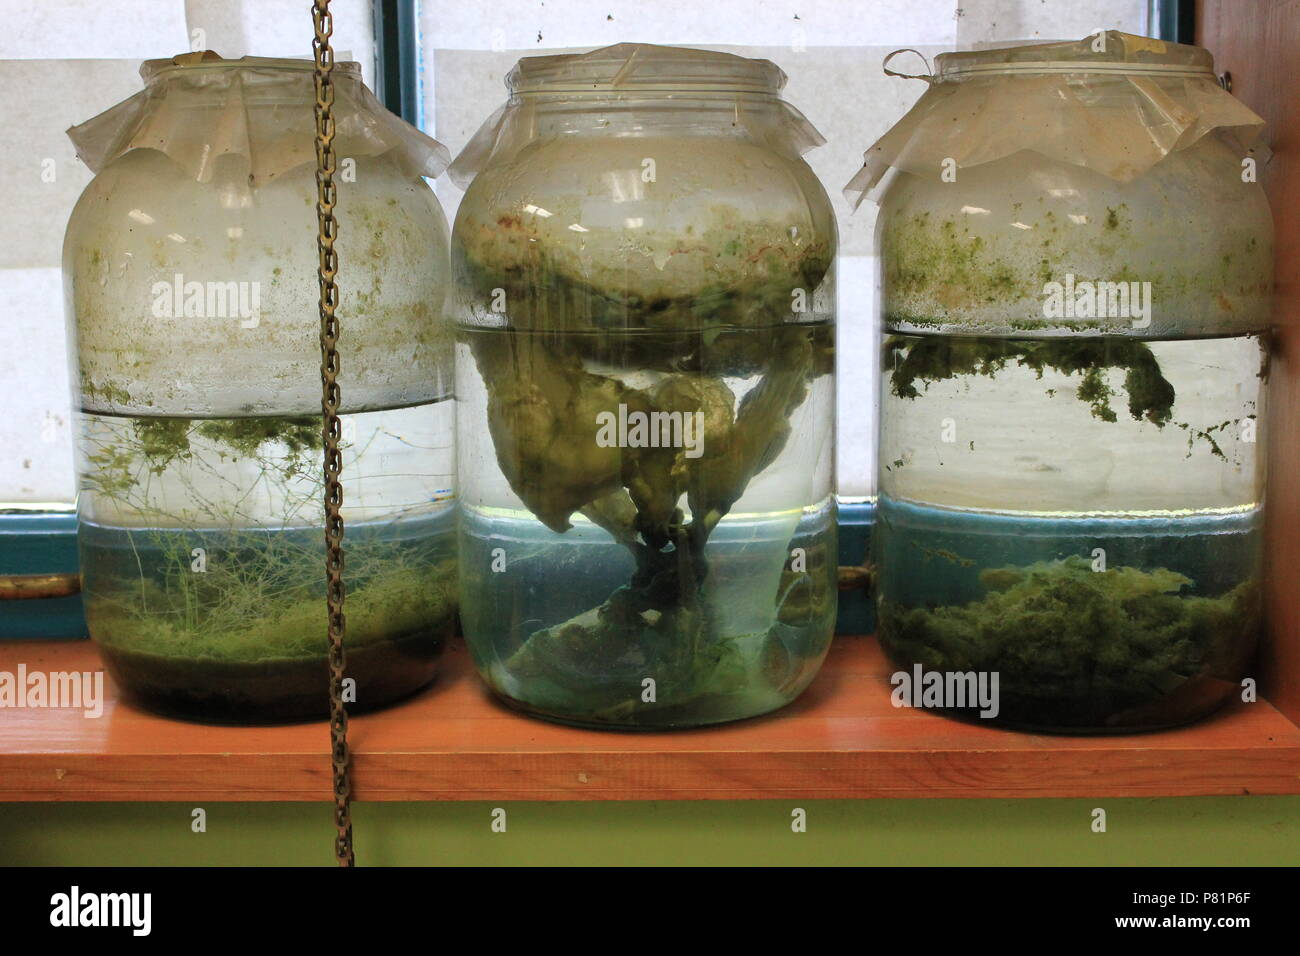 Jars full of specimens stored in a windowsill at the North Park Village Nature Center in Chicago, Illinois. - Stock Image